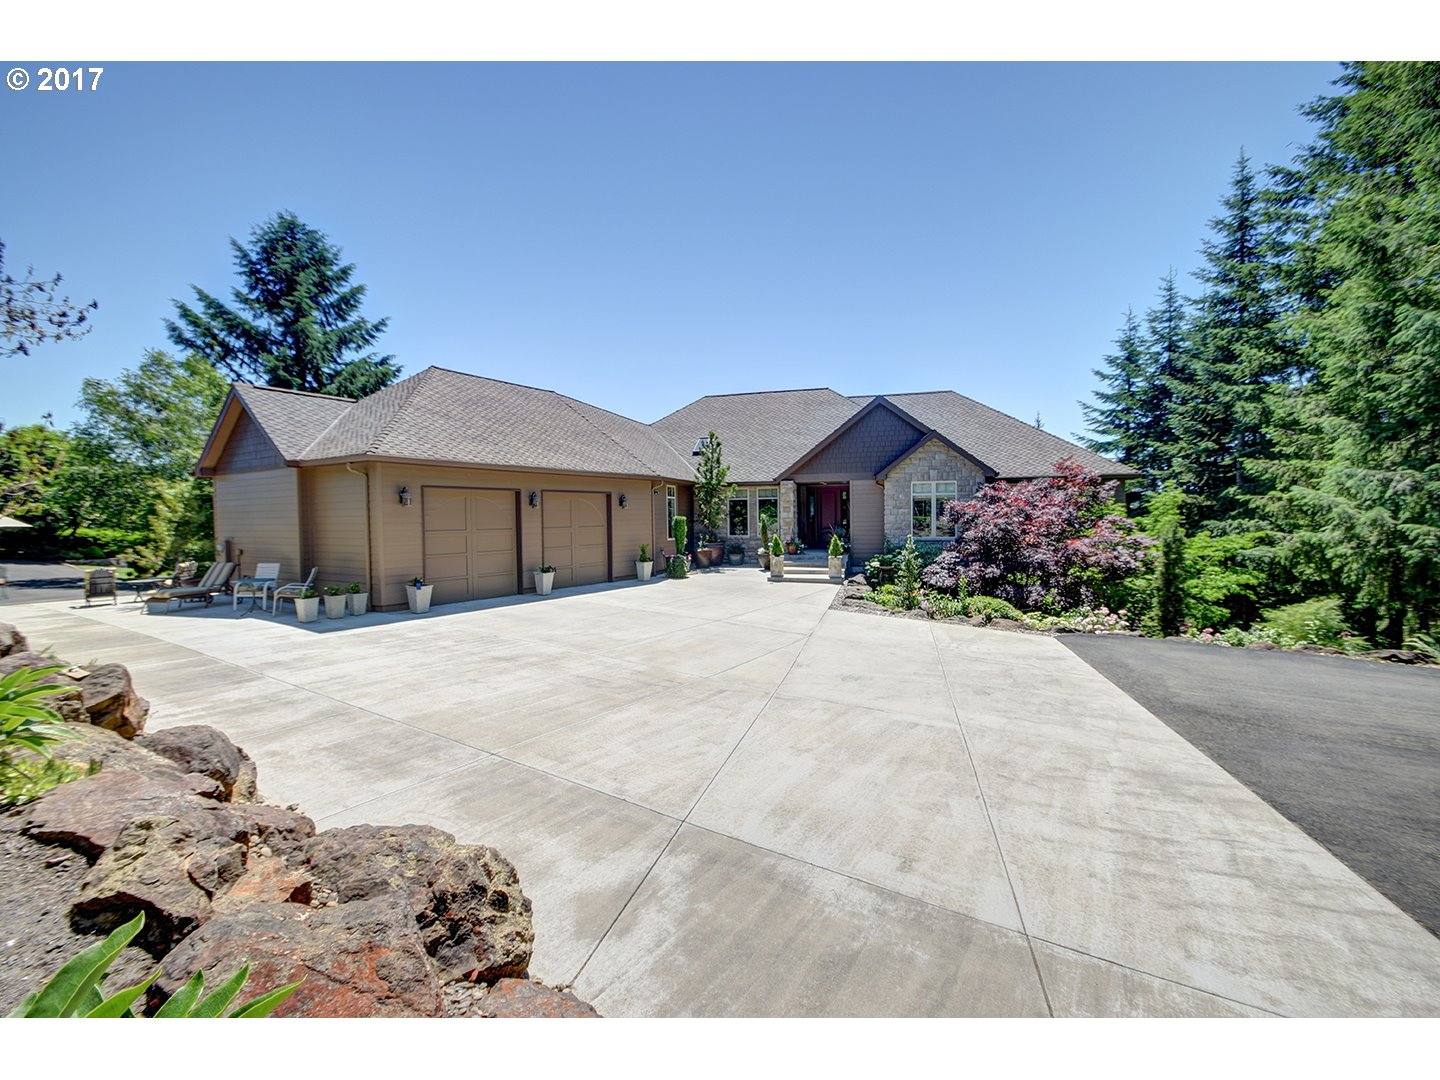 111 S LUOMA RD, Woodland, WA 98674